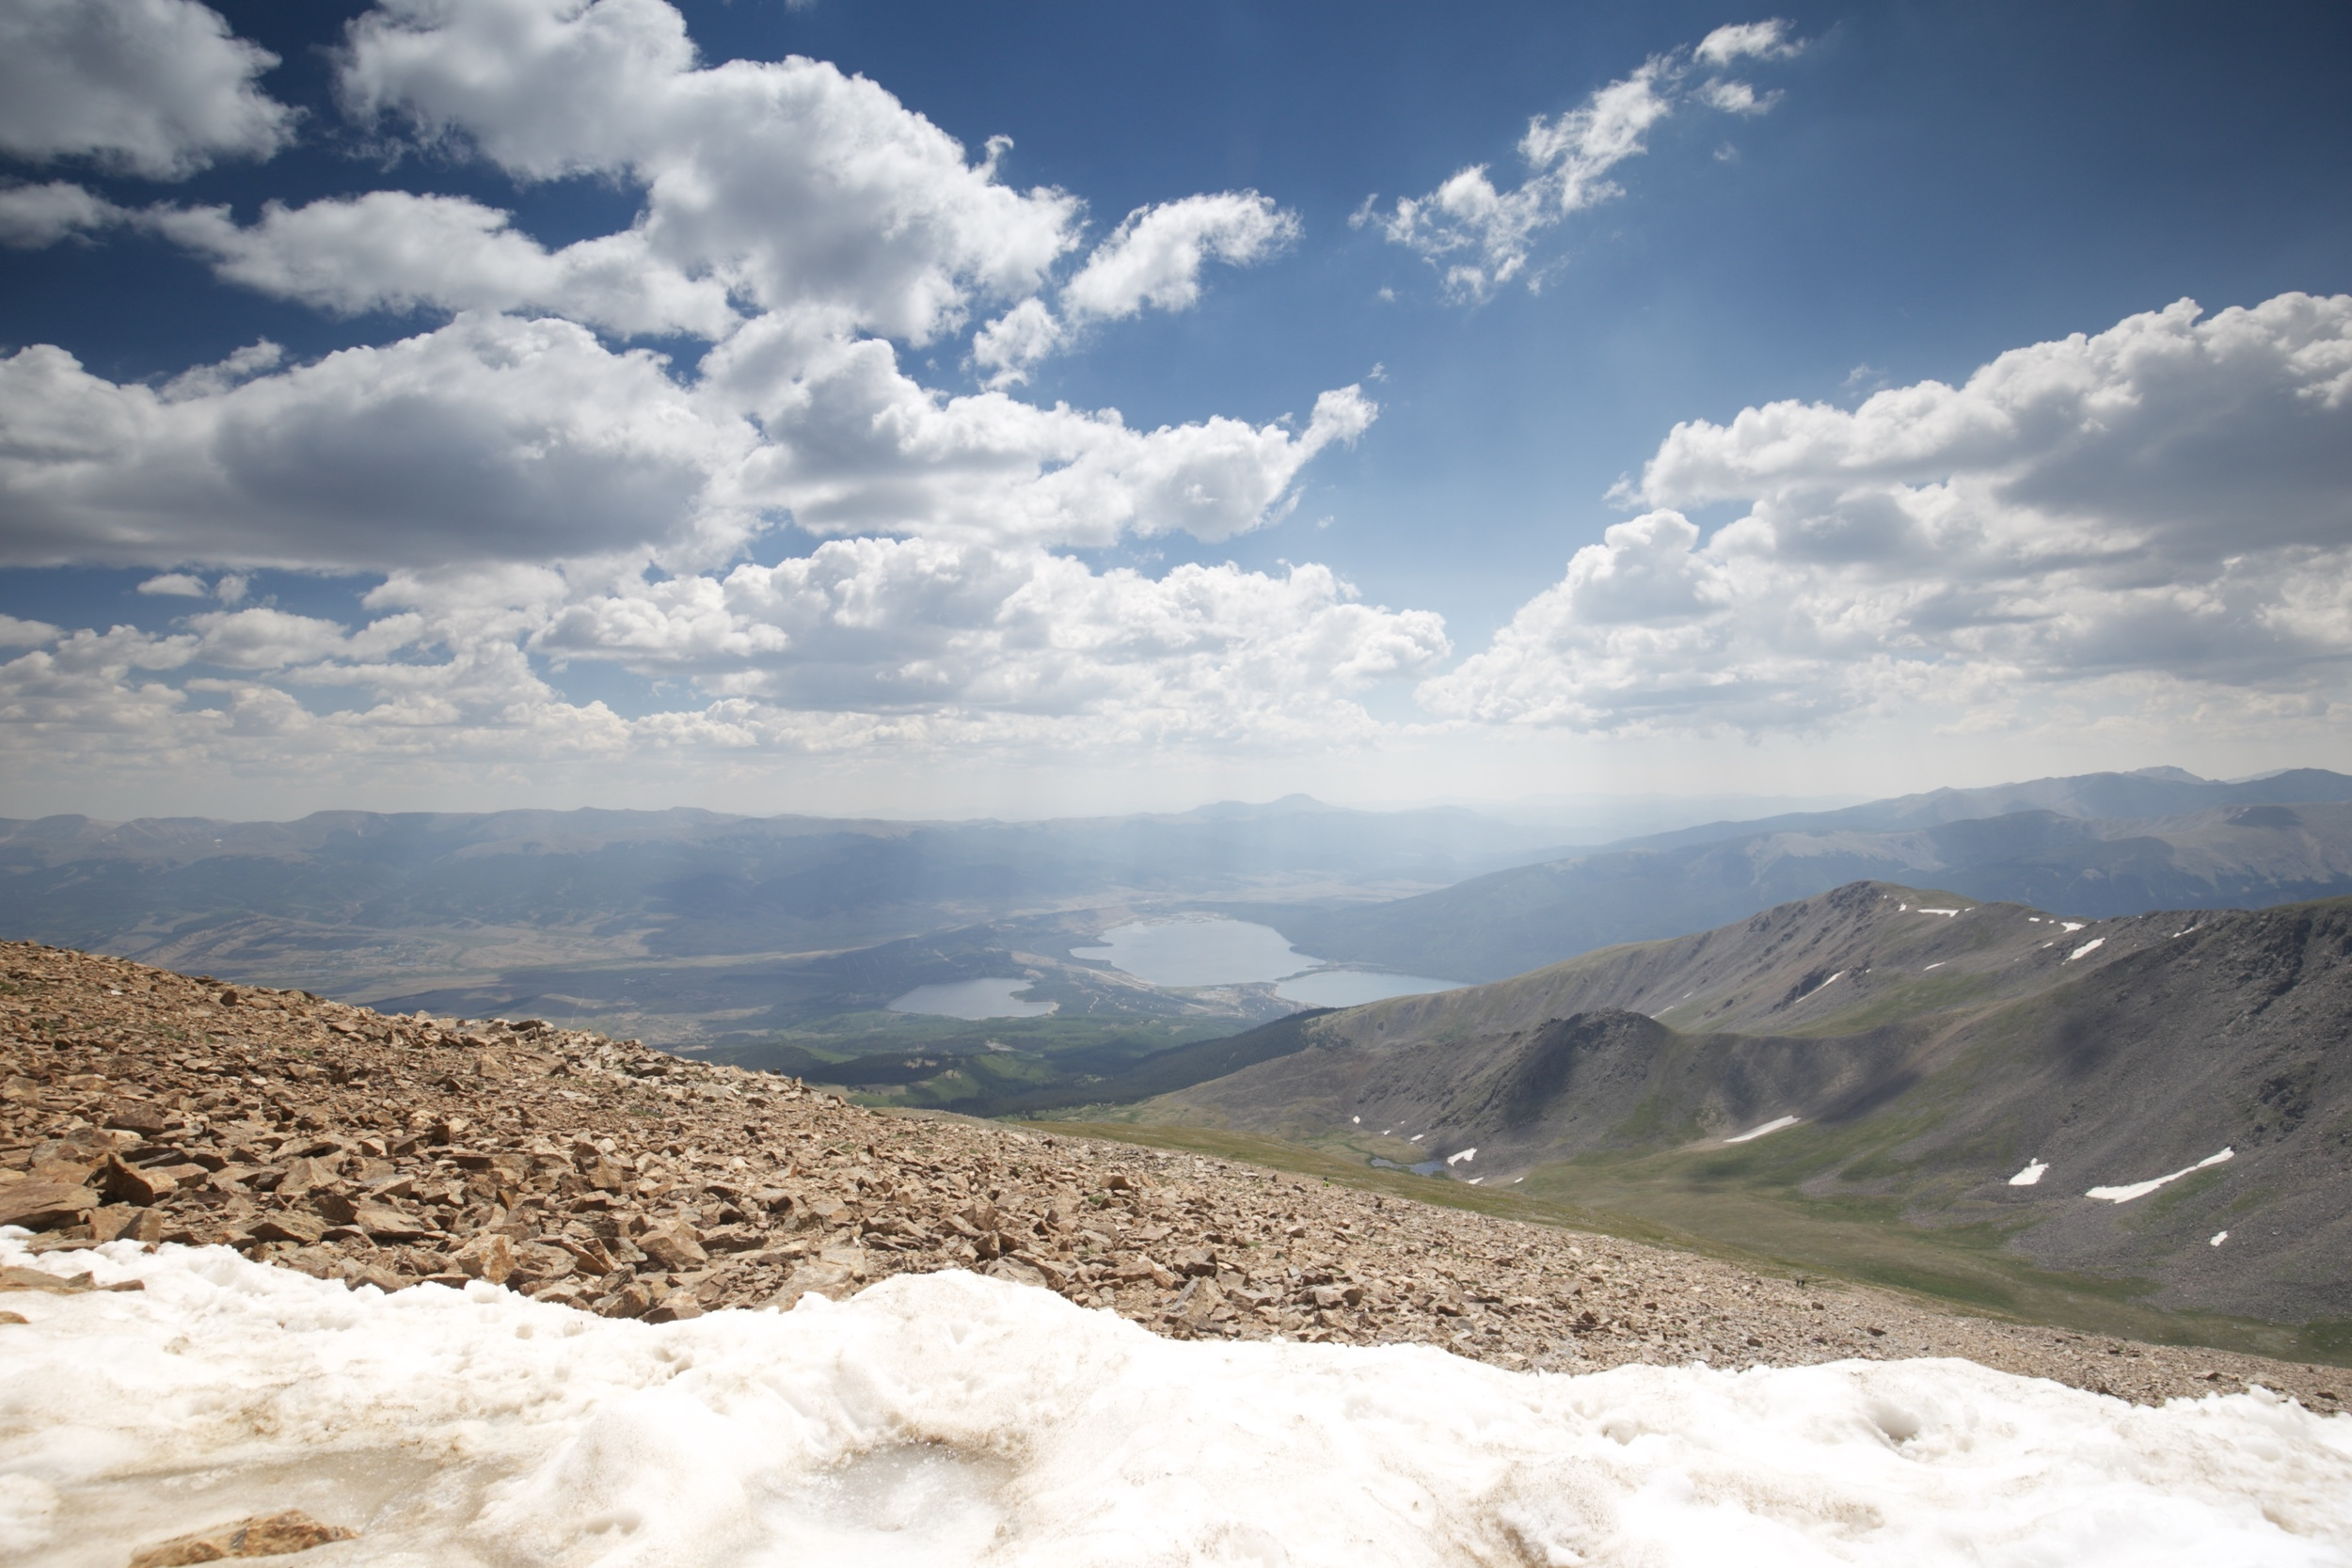 The view from the top of Mount Elbert, Colorado.